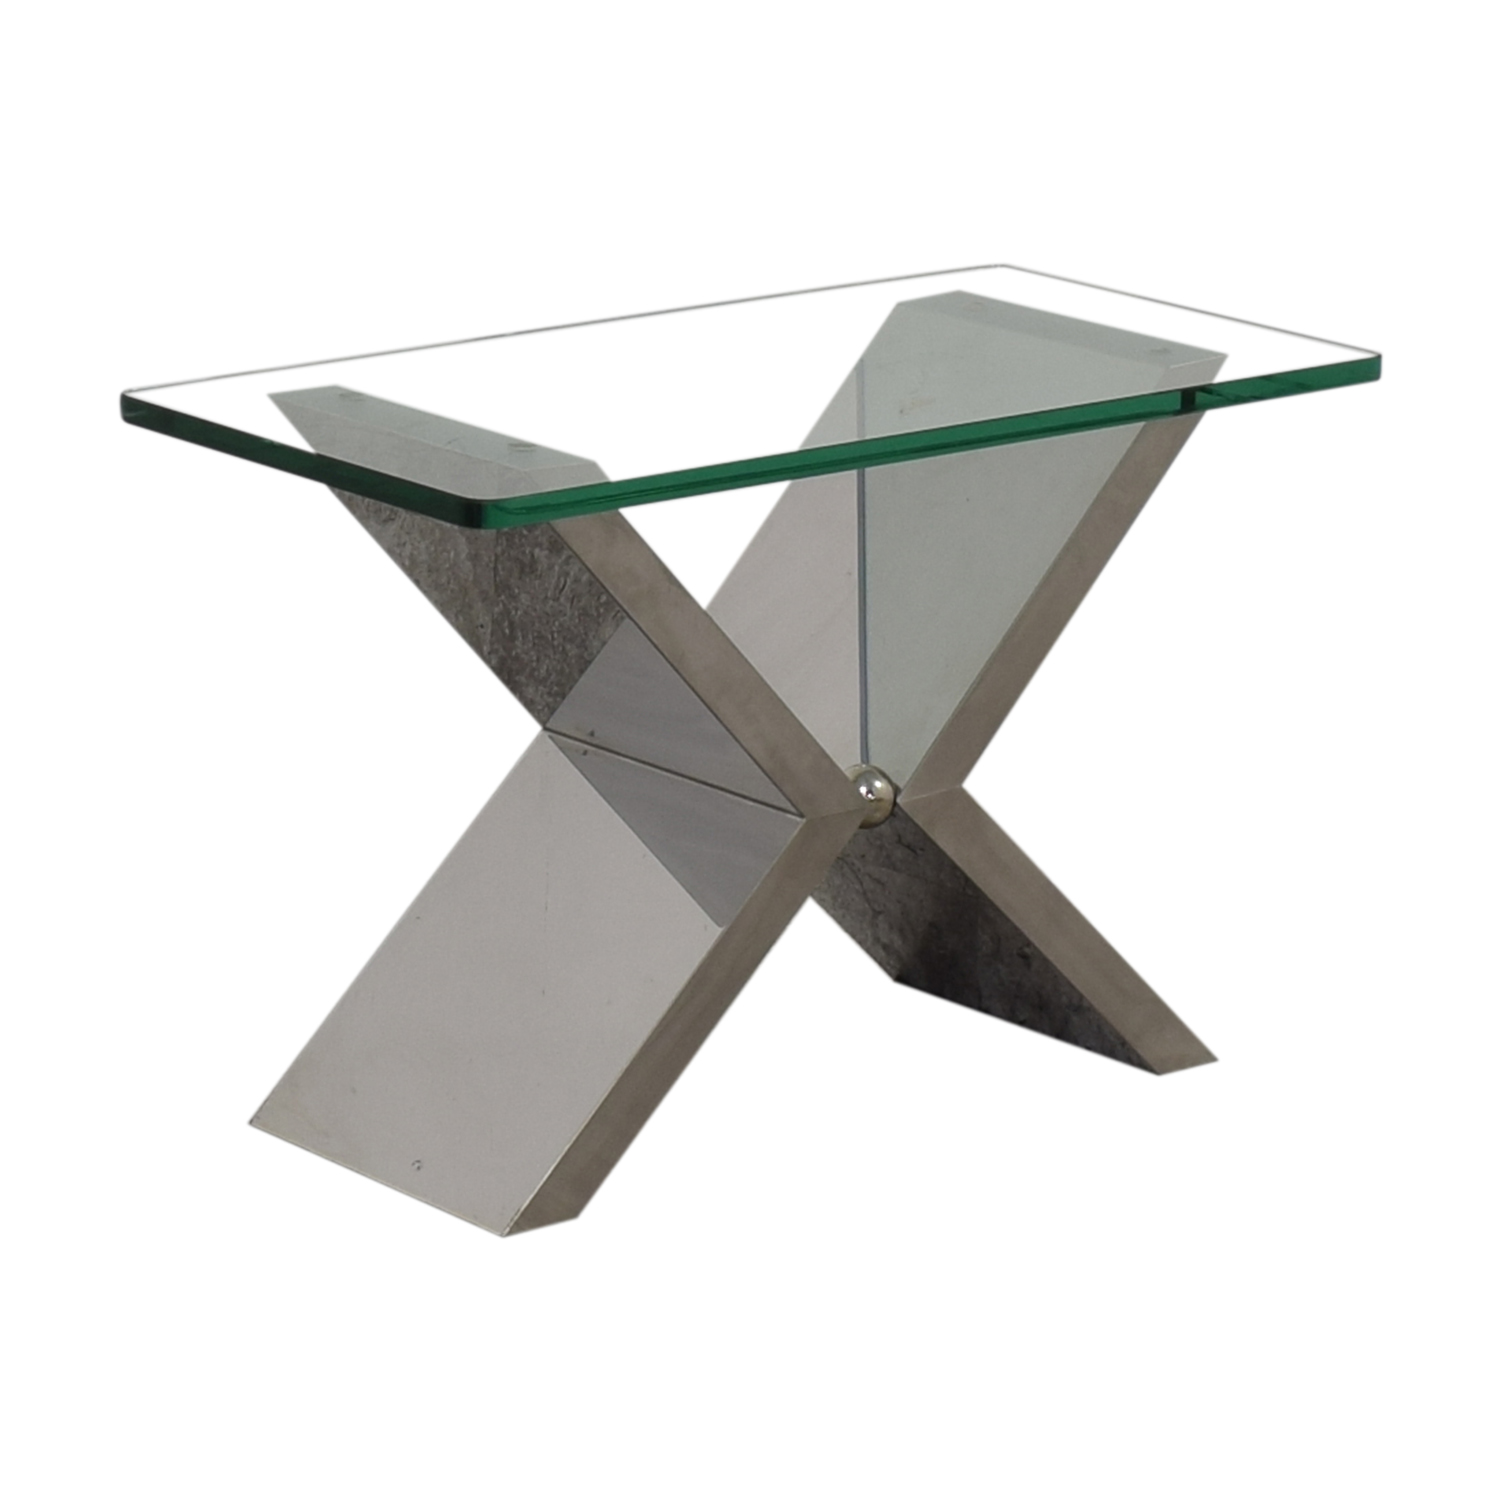 J Robert Scott J Robert Scott Modern Glass and Steel Side Table nj